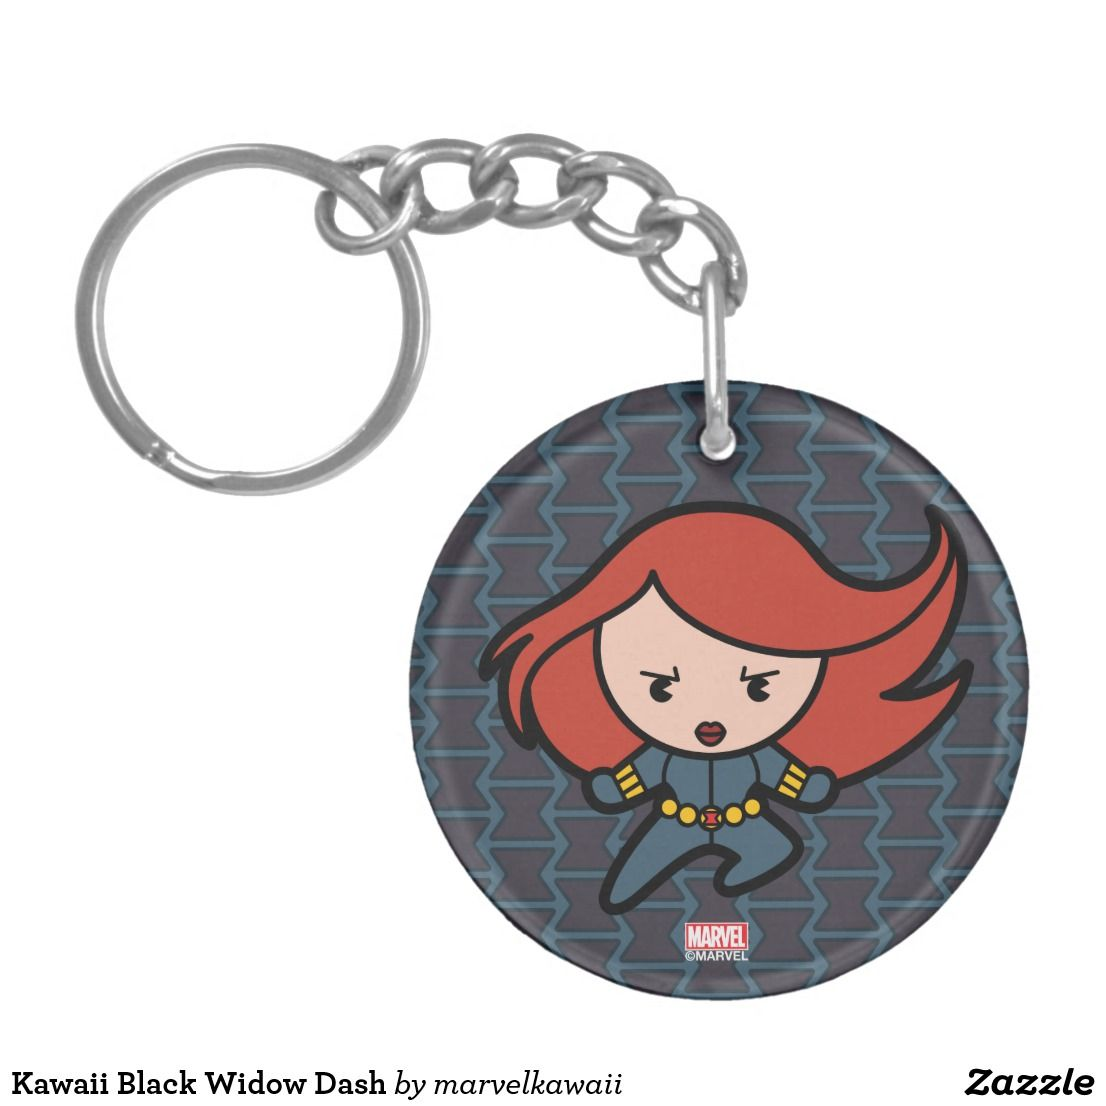 Kawaii Black Widow Dash Keychain Bright And Cool Marvel Superhero Designs To Personalize As A Gift For Yourself Friends Families